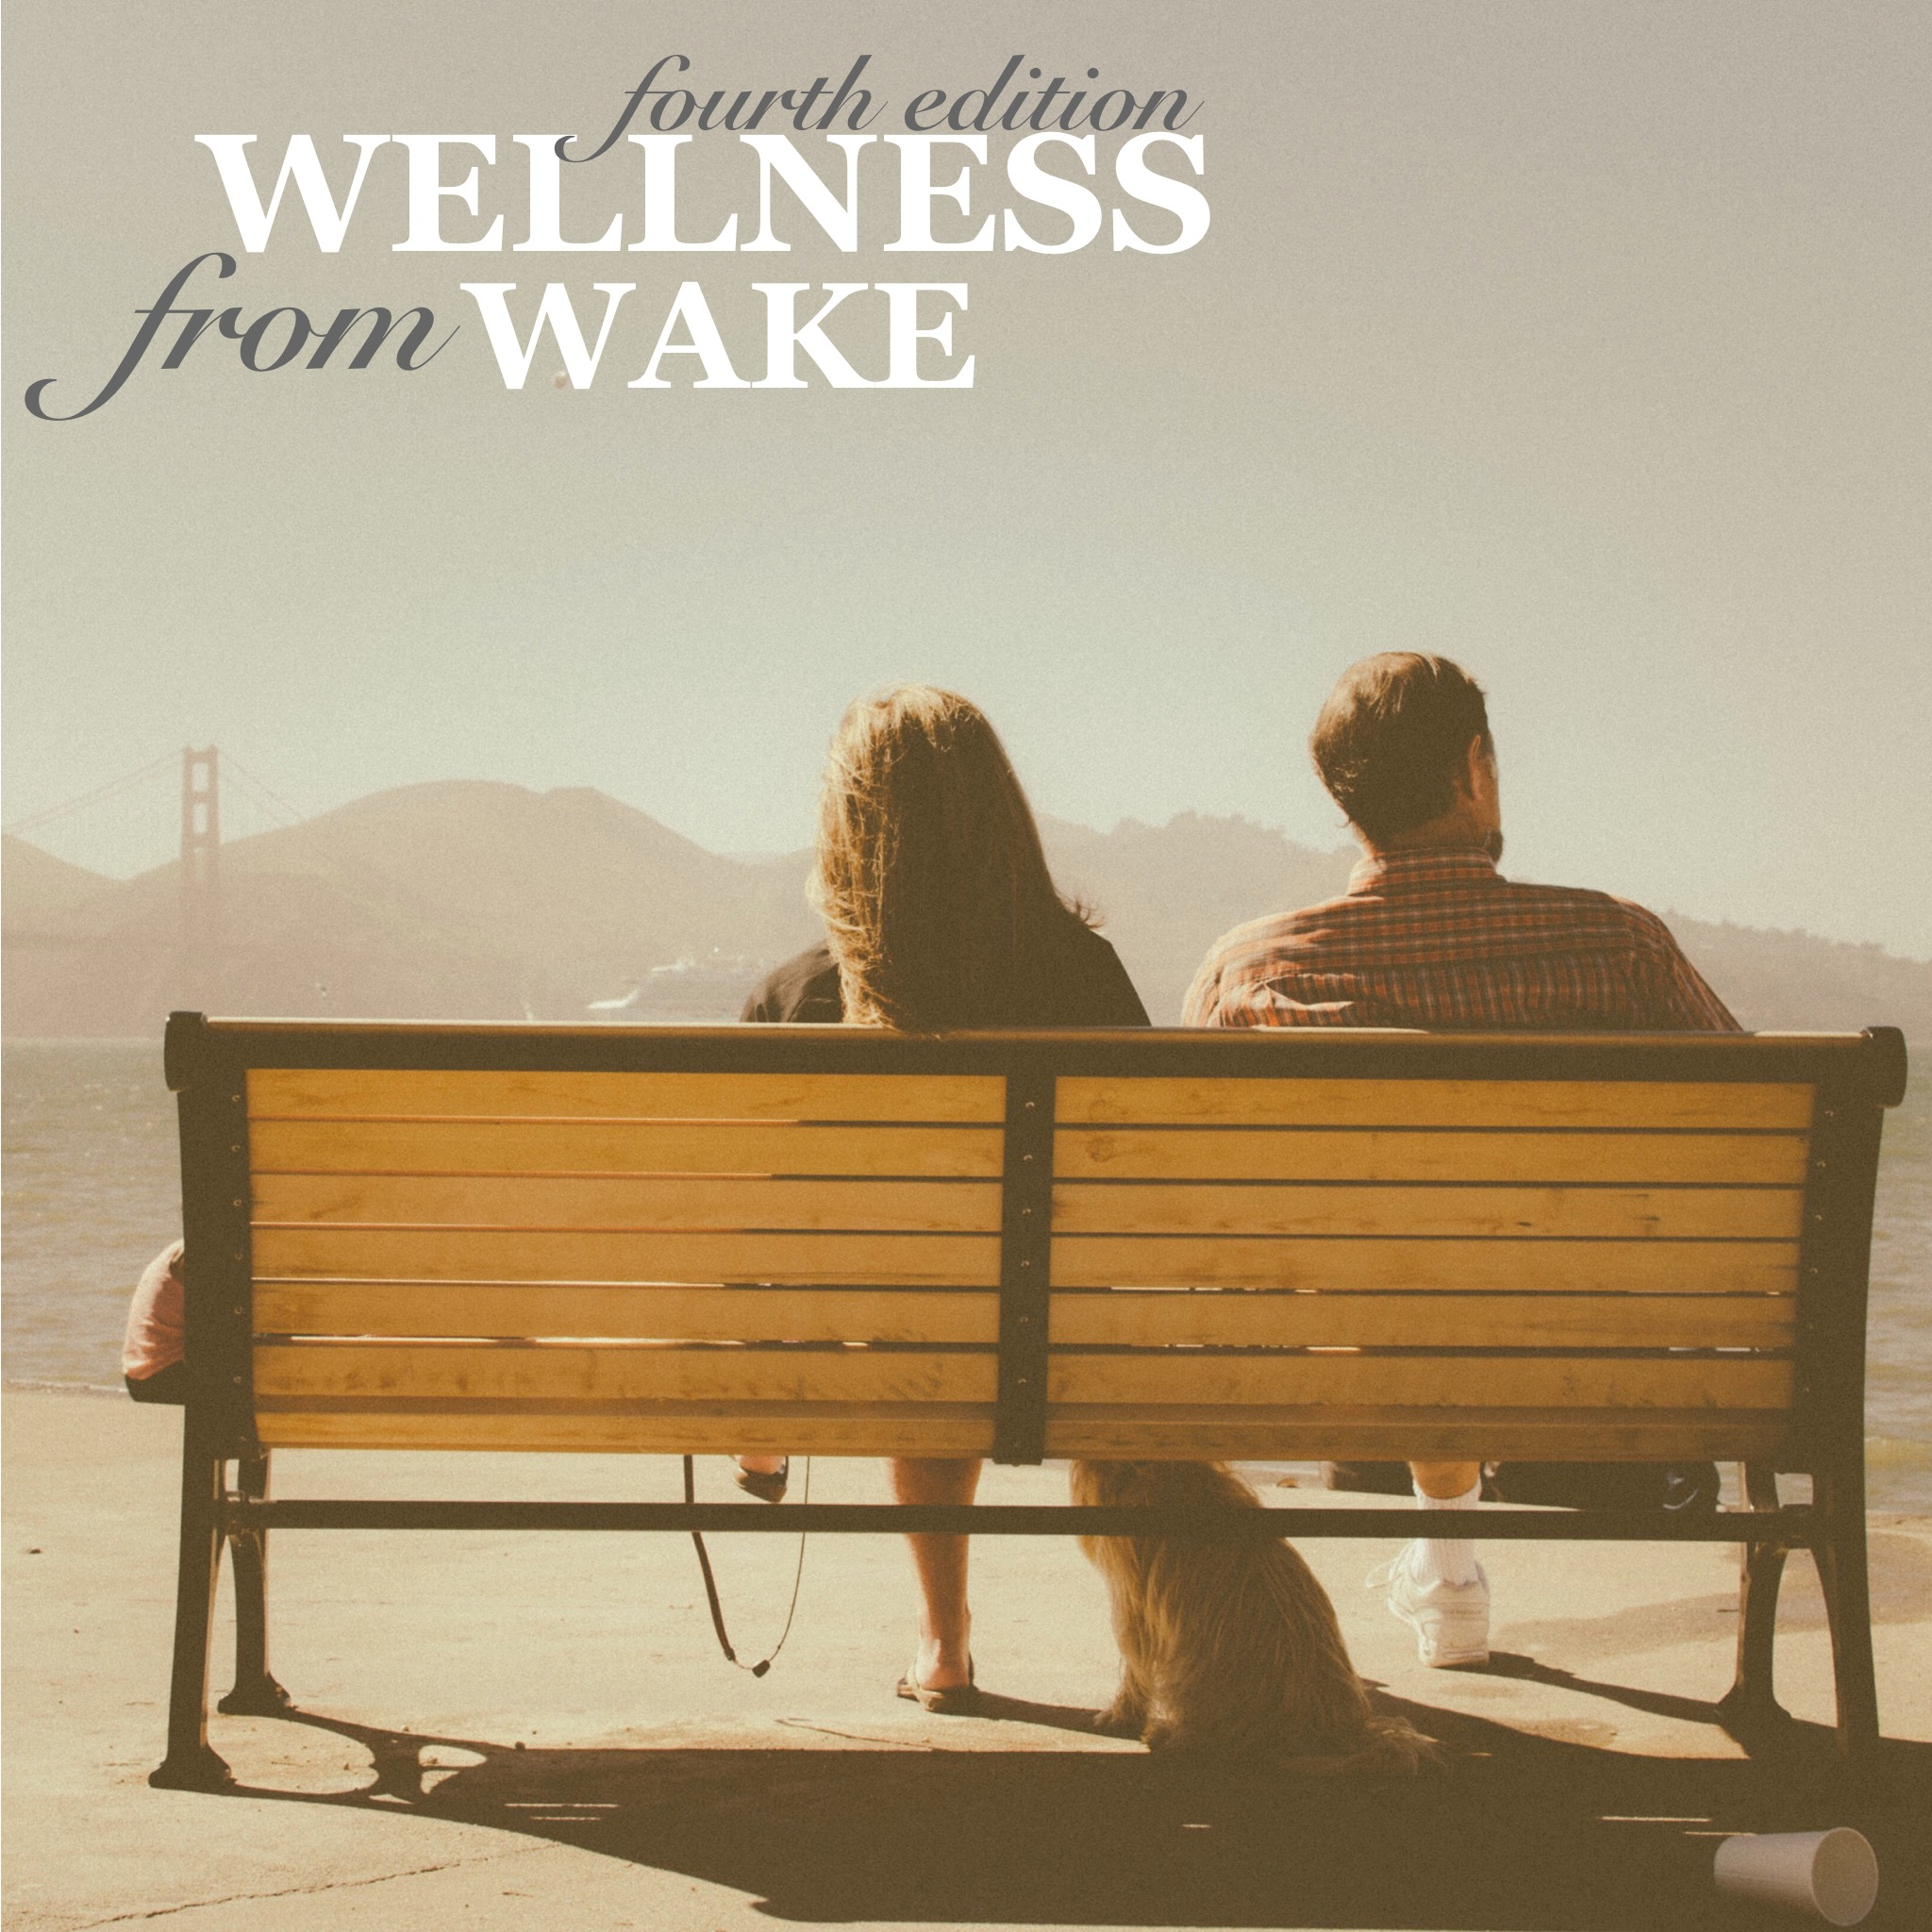 wellness-from-wake-4